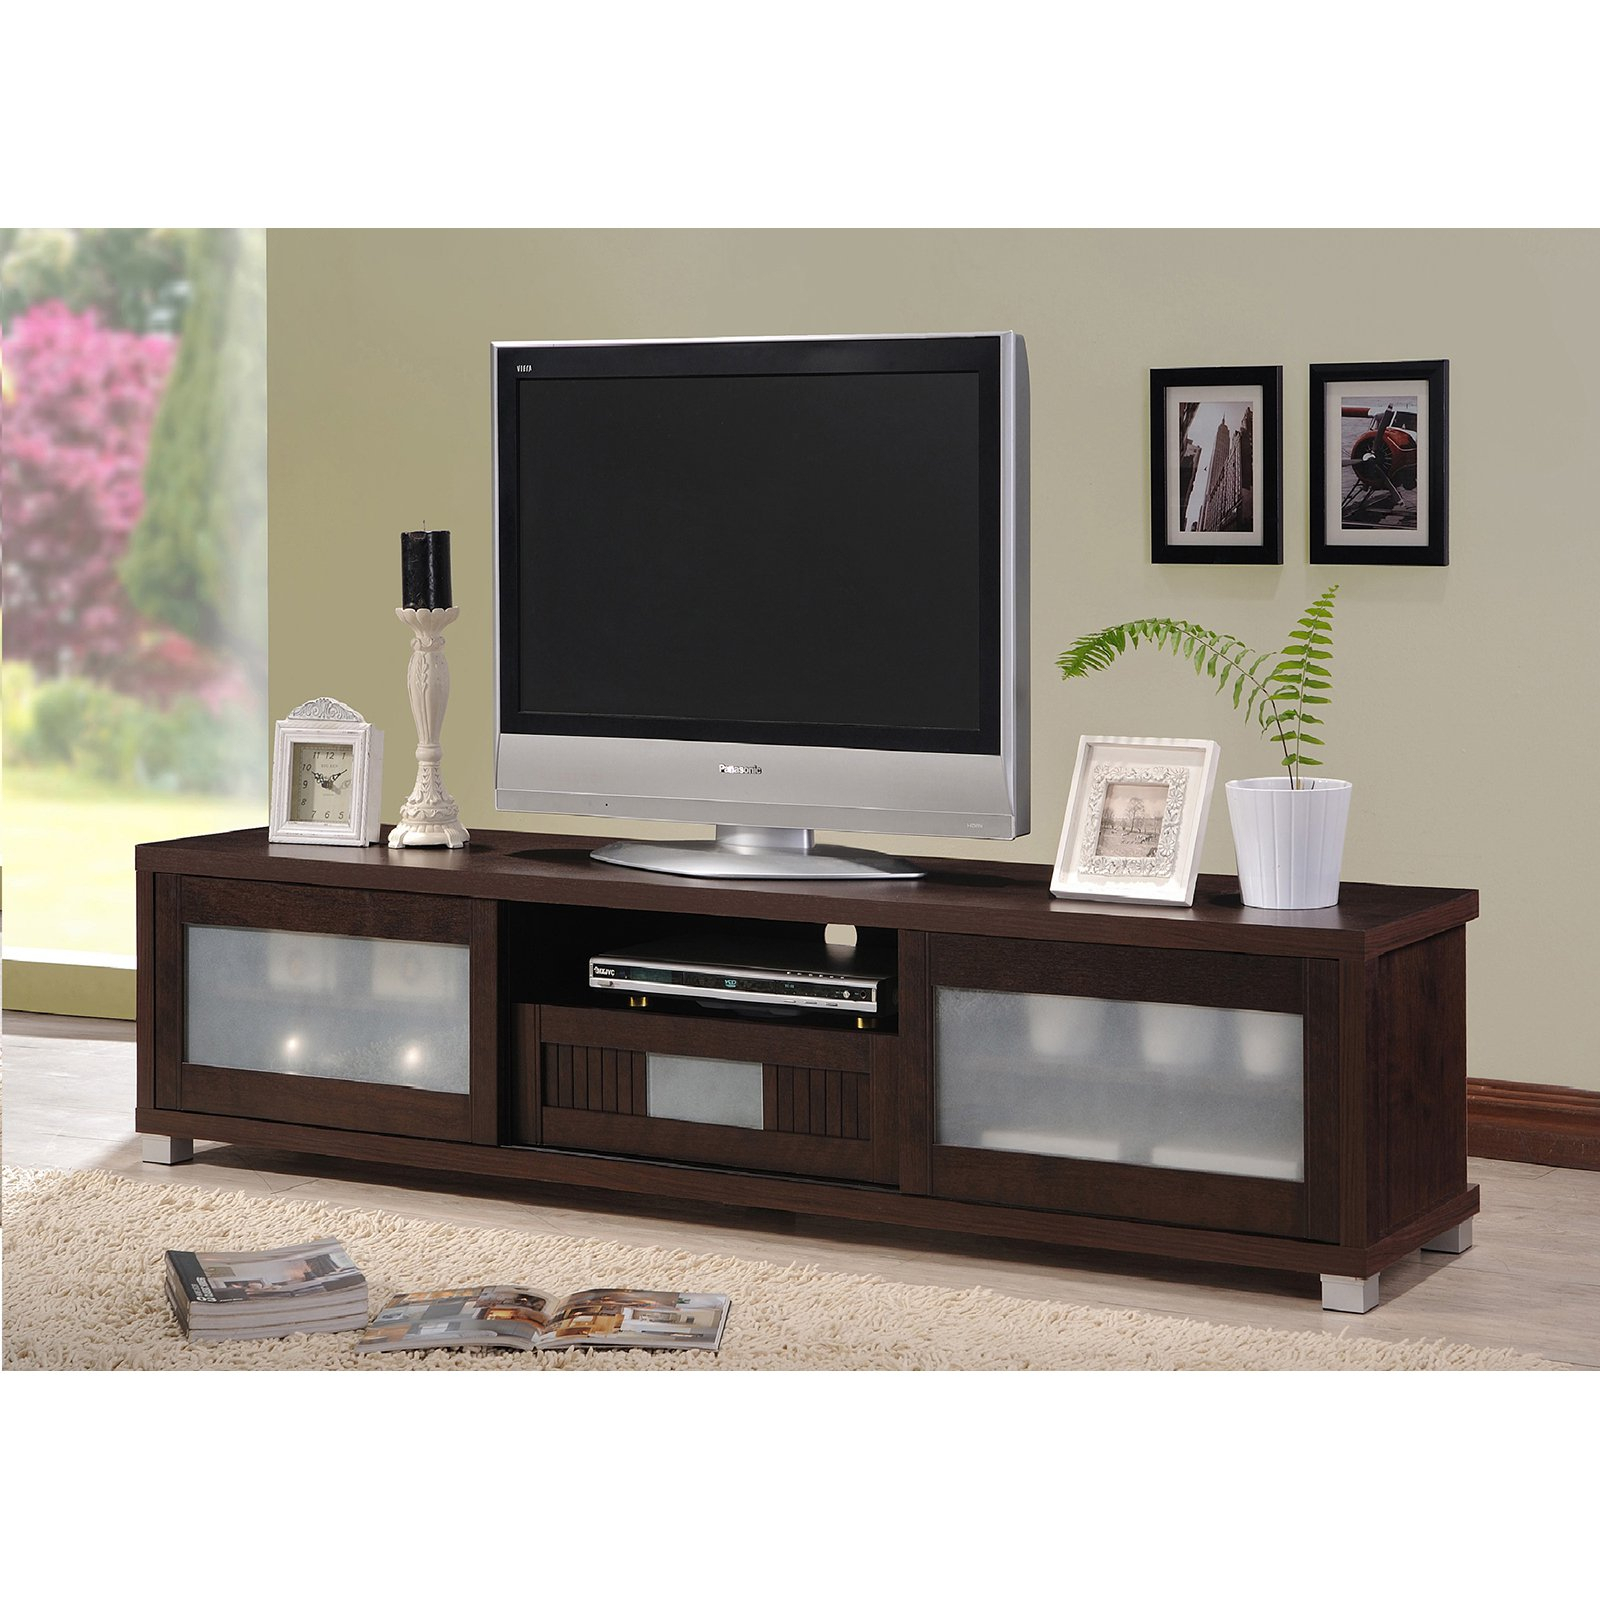 Baxton Studio Chairs Makayla Tv Stand Replacement Parts Customer Inside Dixon White 65 Inch Tv Stands (View 7 of 30)